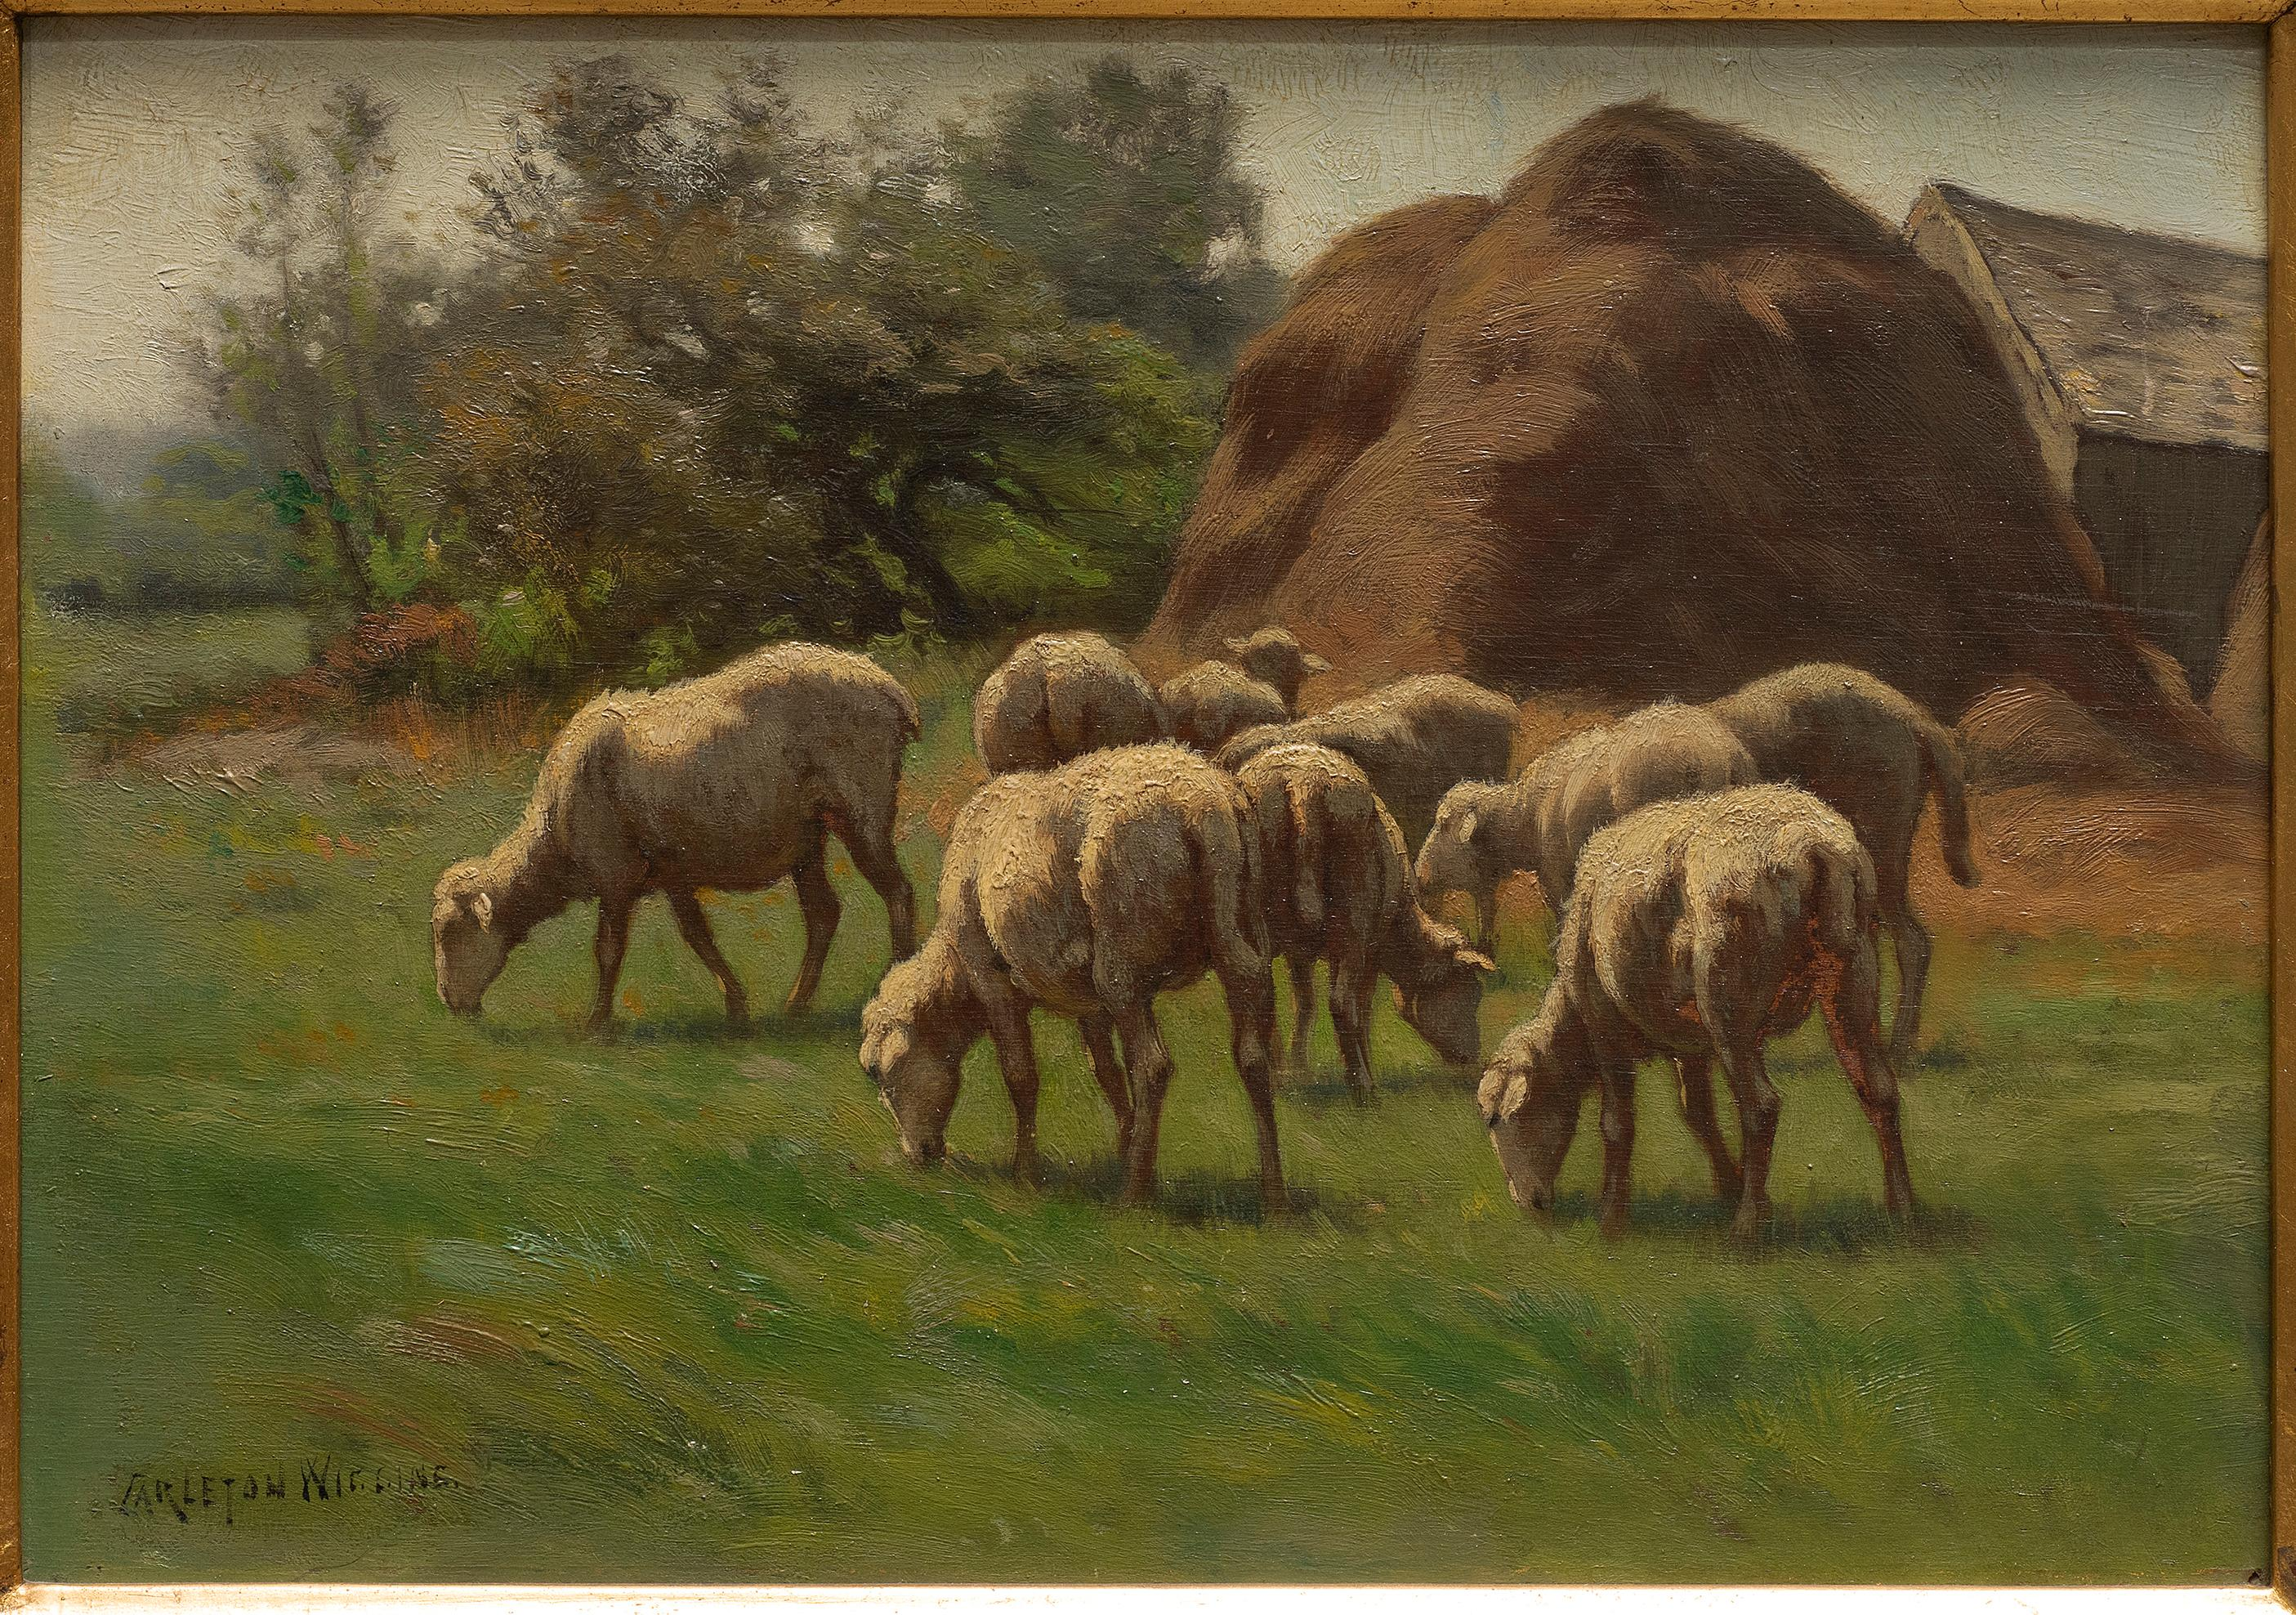 Sheep Grazing in Landscape with Hay Bales by Carleton Wiggins, 19th century